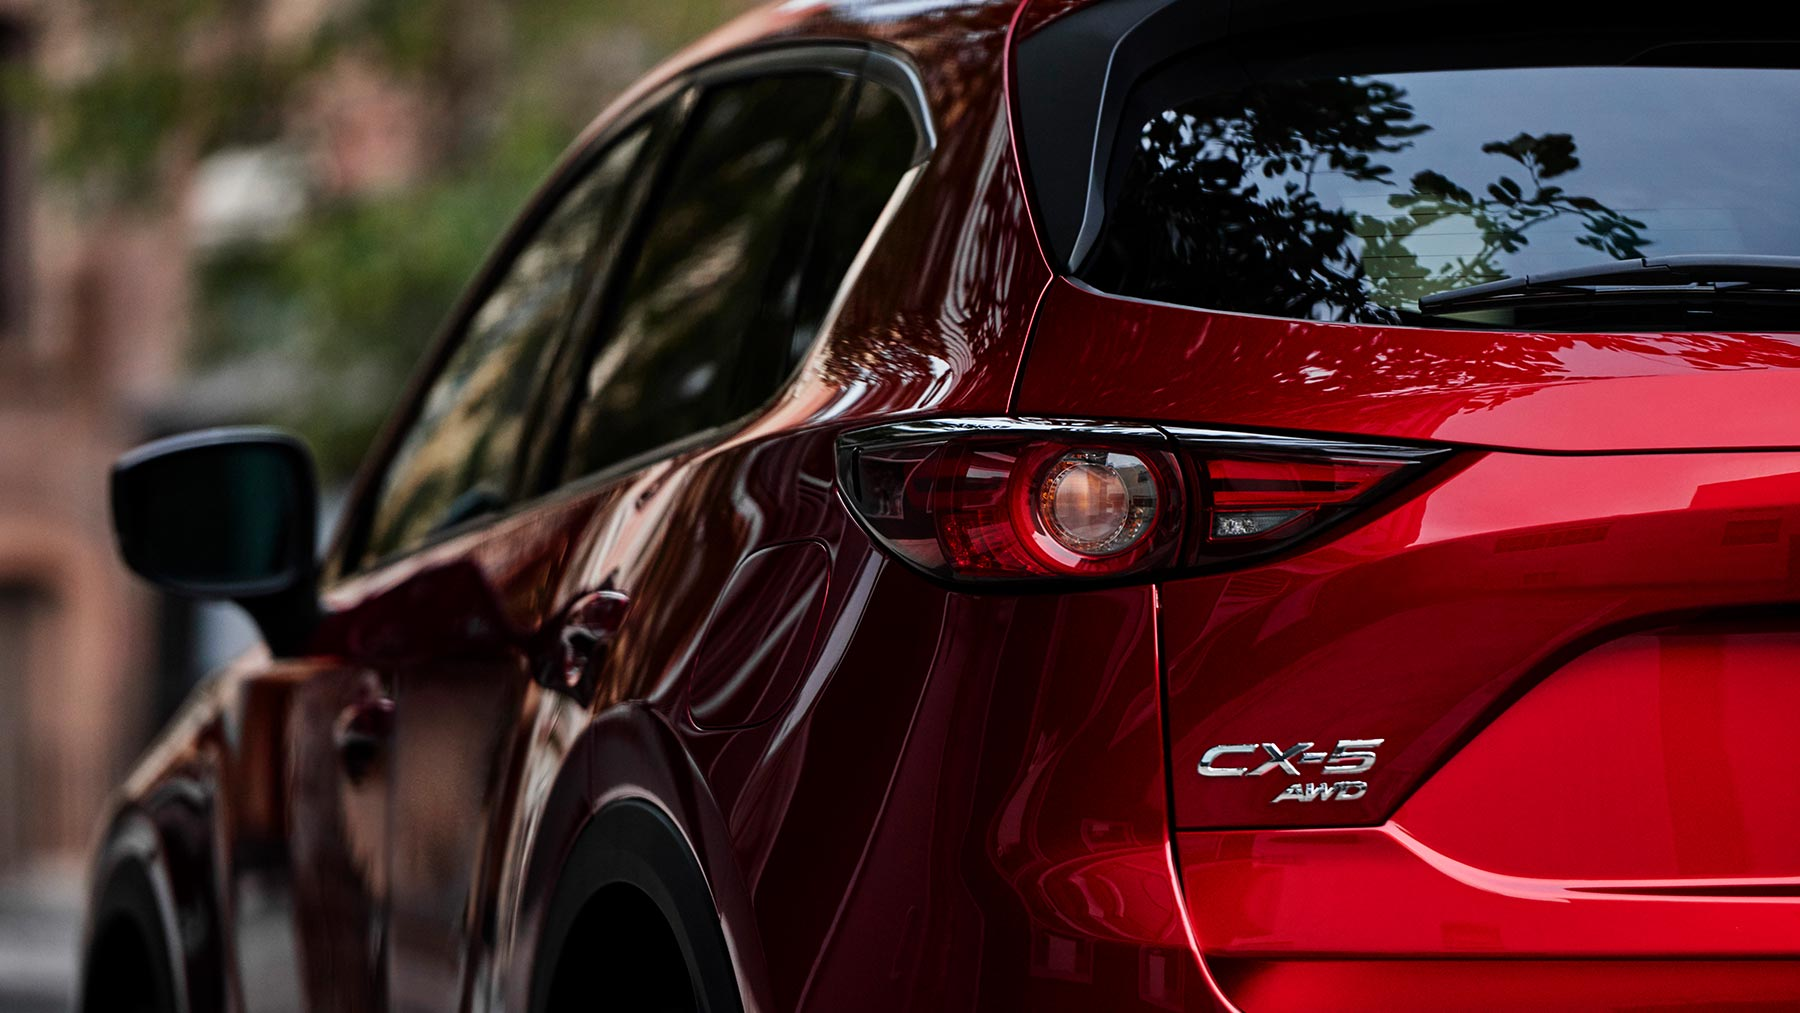 2019 Mazda CX-5 Sport Red Exterior Close-up Side Picture